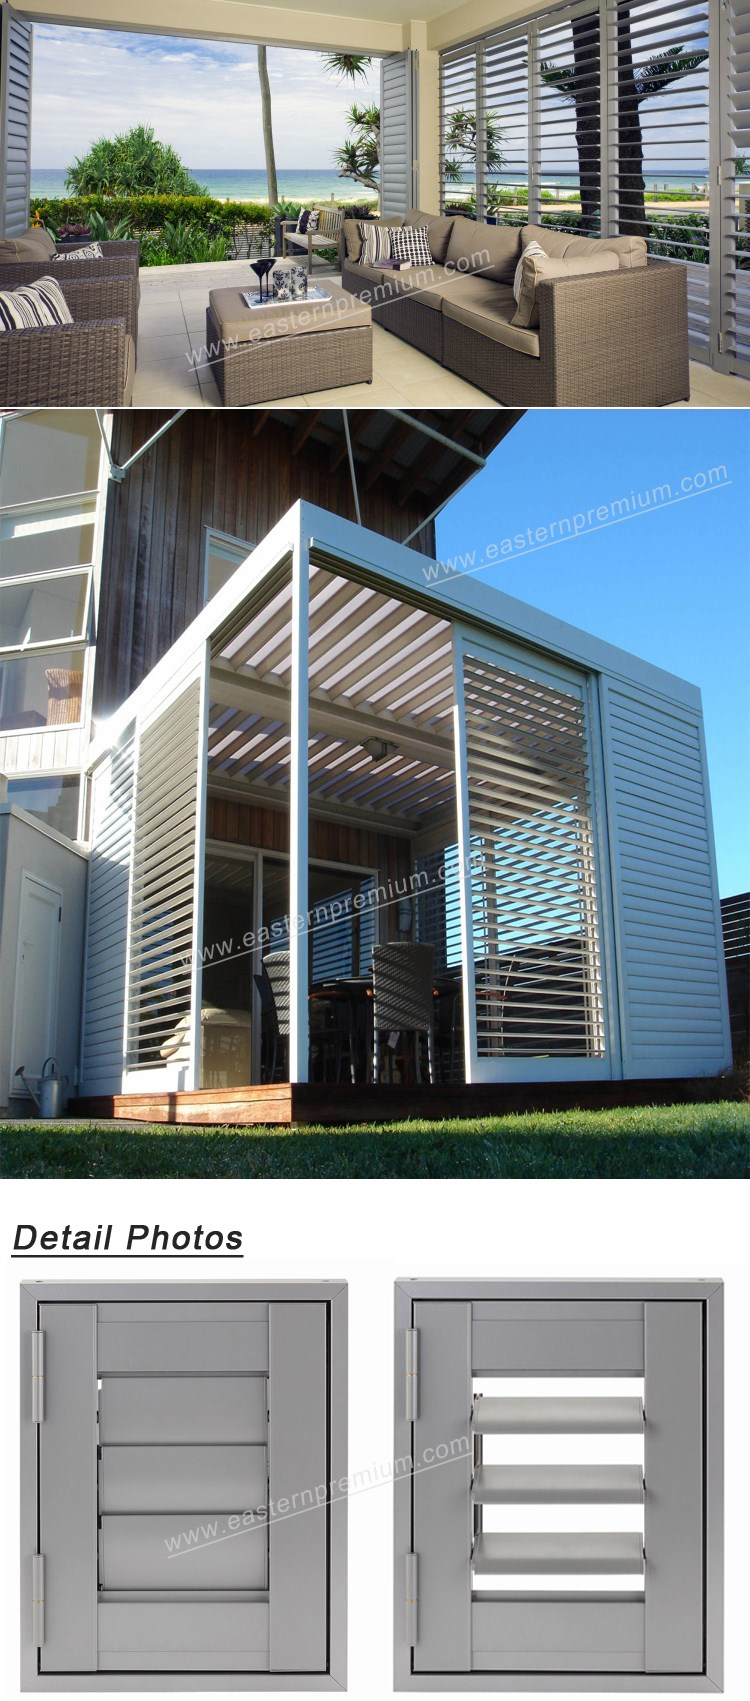 French Style Outdoor Diy Aluminum Adjustable Louver Window Shutters - Buy  Louver Shutters,Adjustable Louver Shutters,Aluminum Shutters Product on